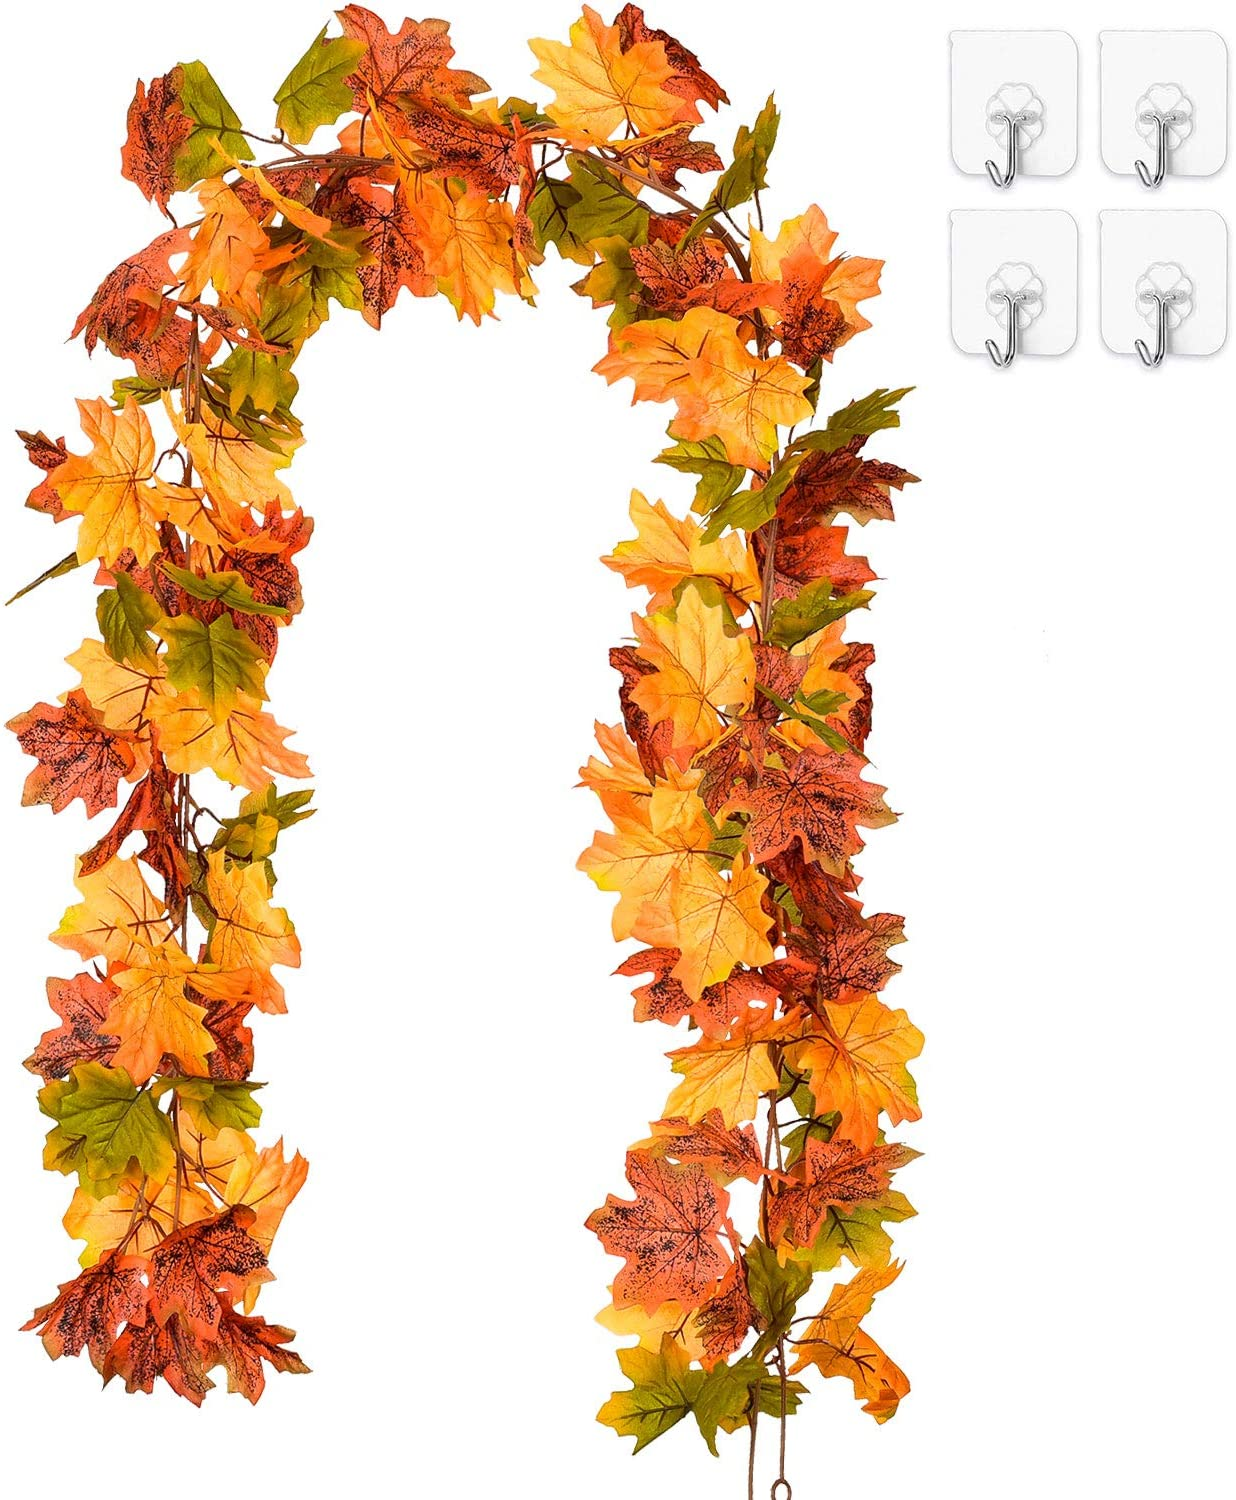 Coolmade 2 Pack Maple Leaves Fall Garland 6ft Strand Artificial Fall Foliage Garland Colorful Autumn Decoration For Home Wedding Party Thanksgiving Walmart Com Walmart Com